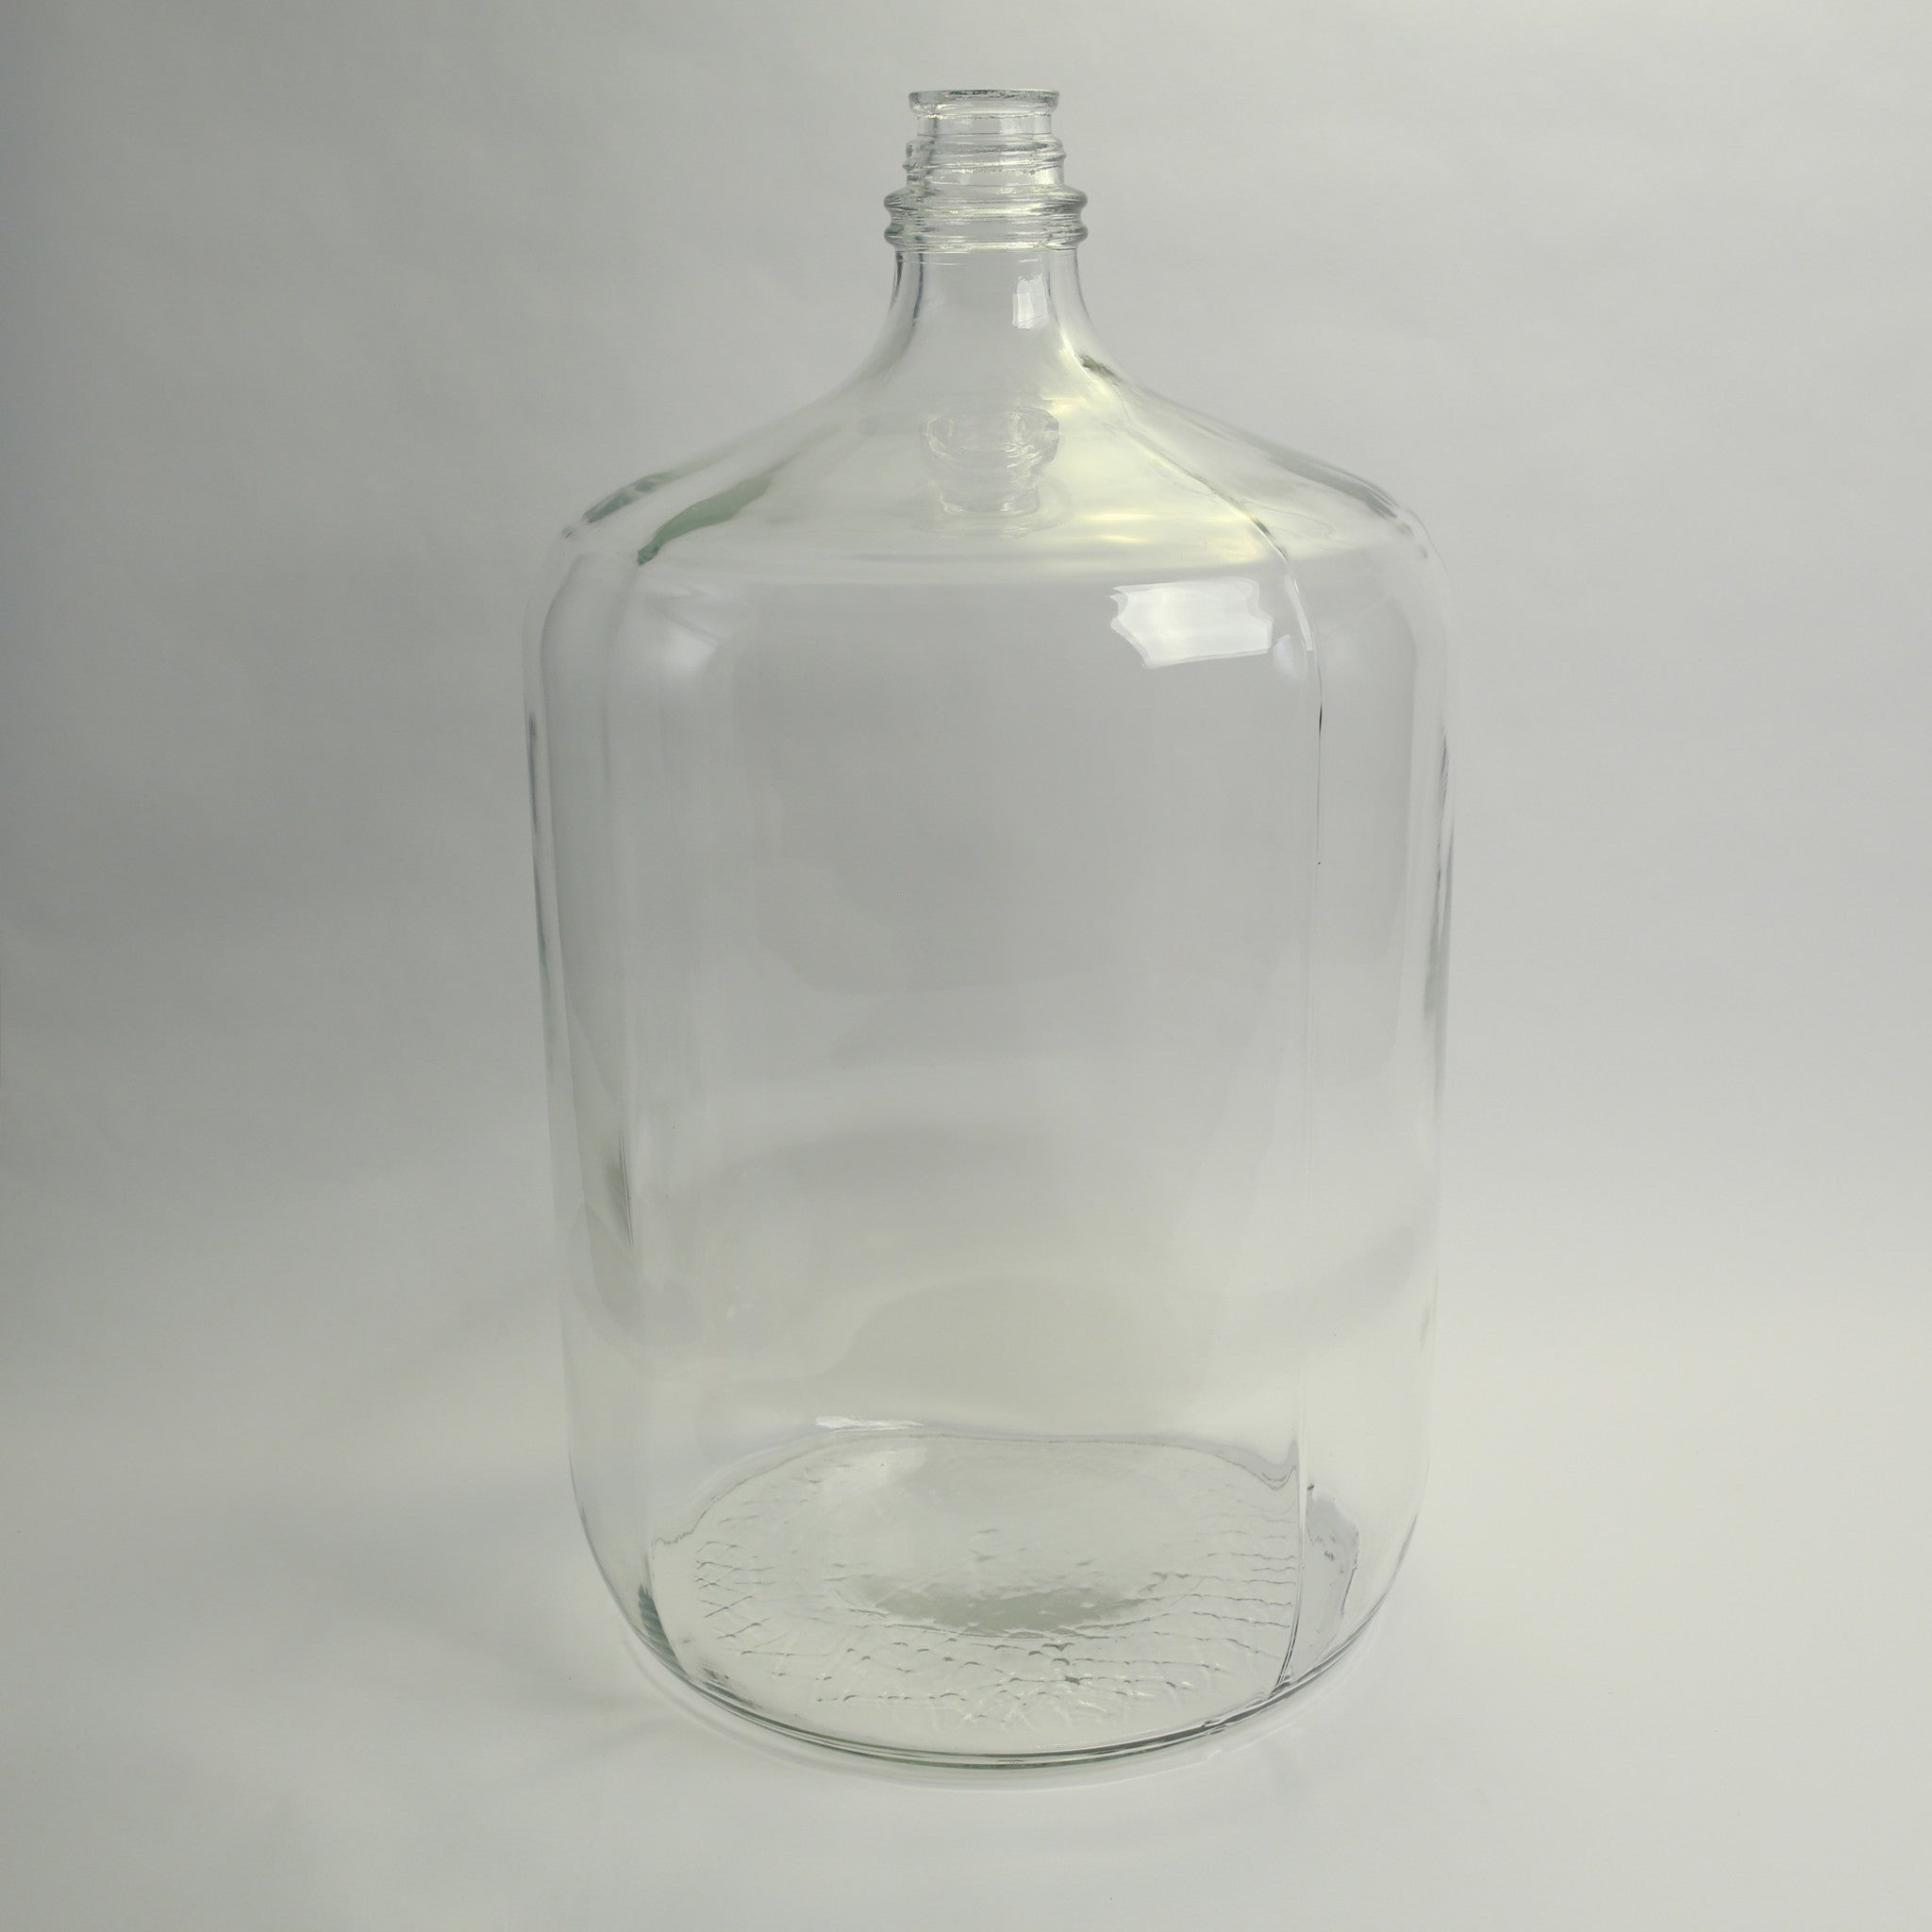 41b05751ca ... 6.5 Gallon Glass Carboy Tags: Fermenters · Image of